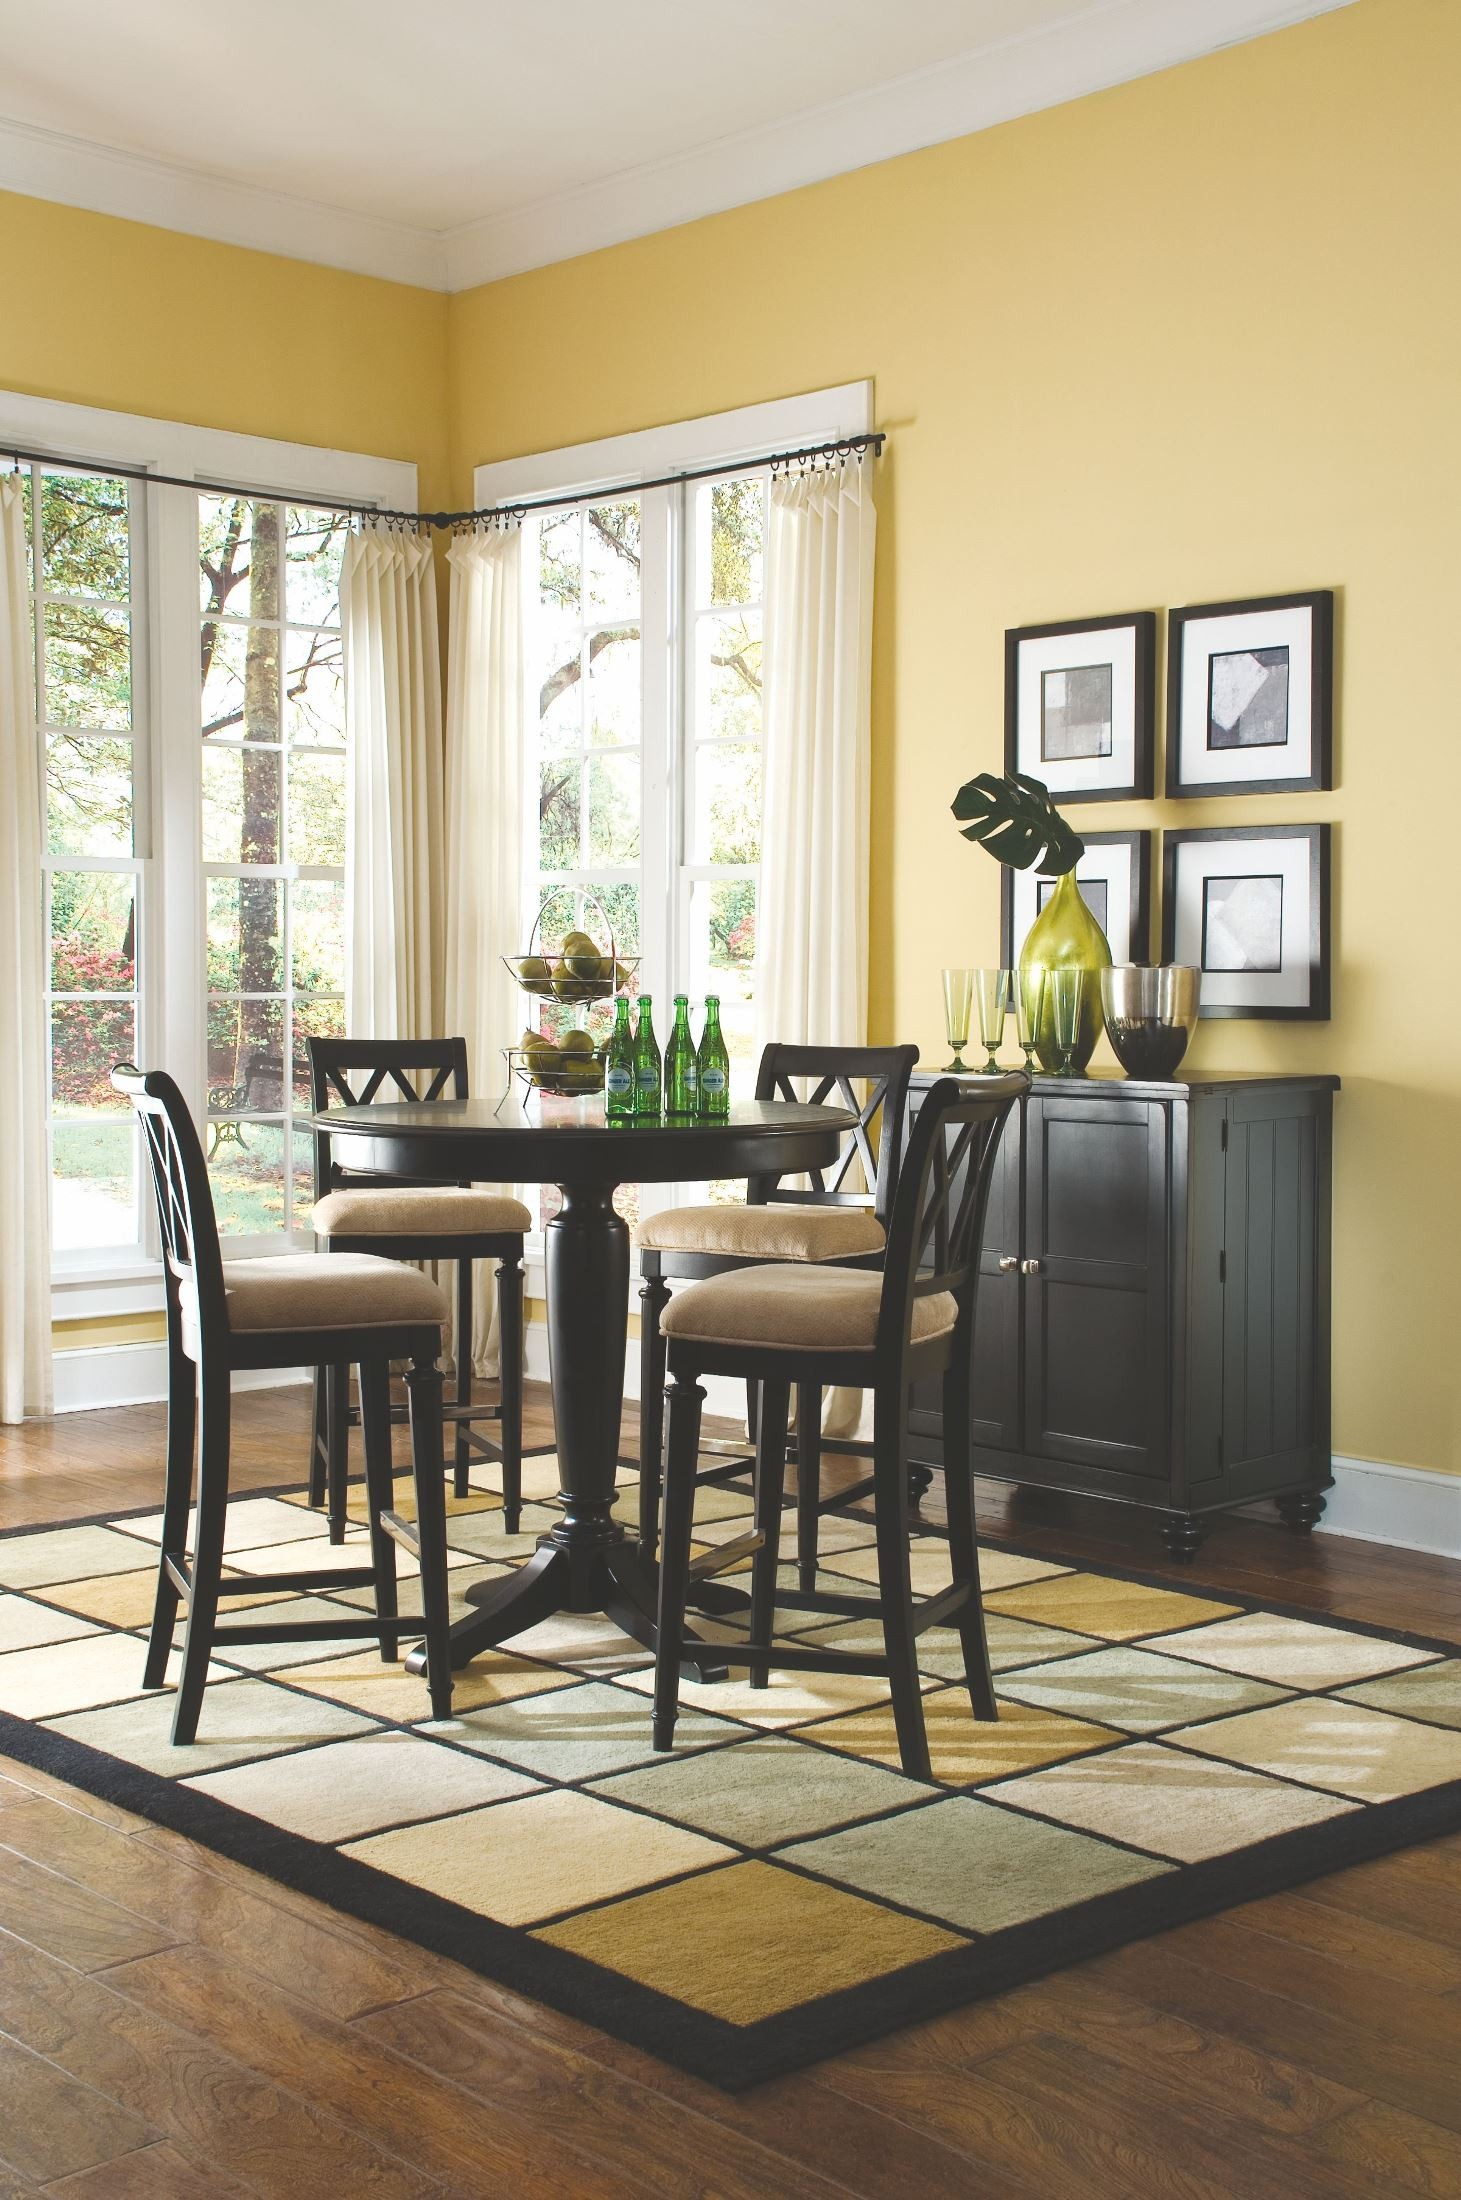 Camden Black Round Counter Height Pedestal Dining Room Set In 2018 Charterville Counter Height Pedestal Dining Tables (View 11 of 15)